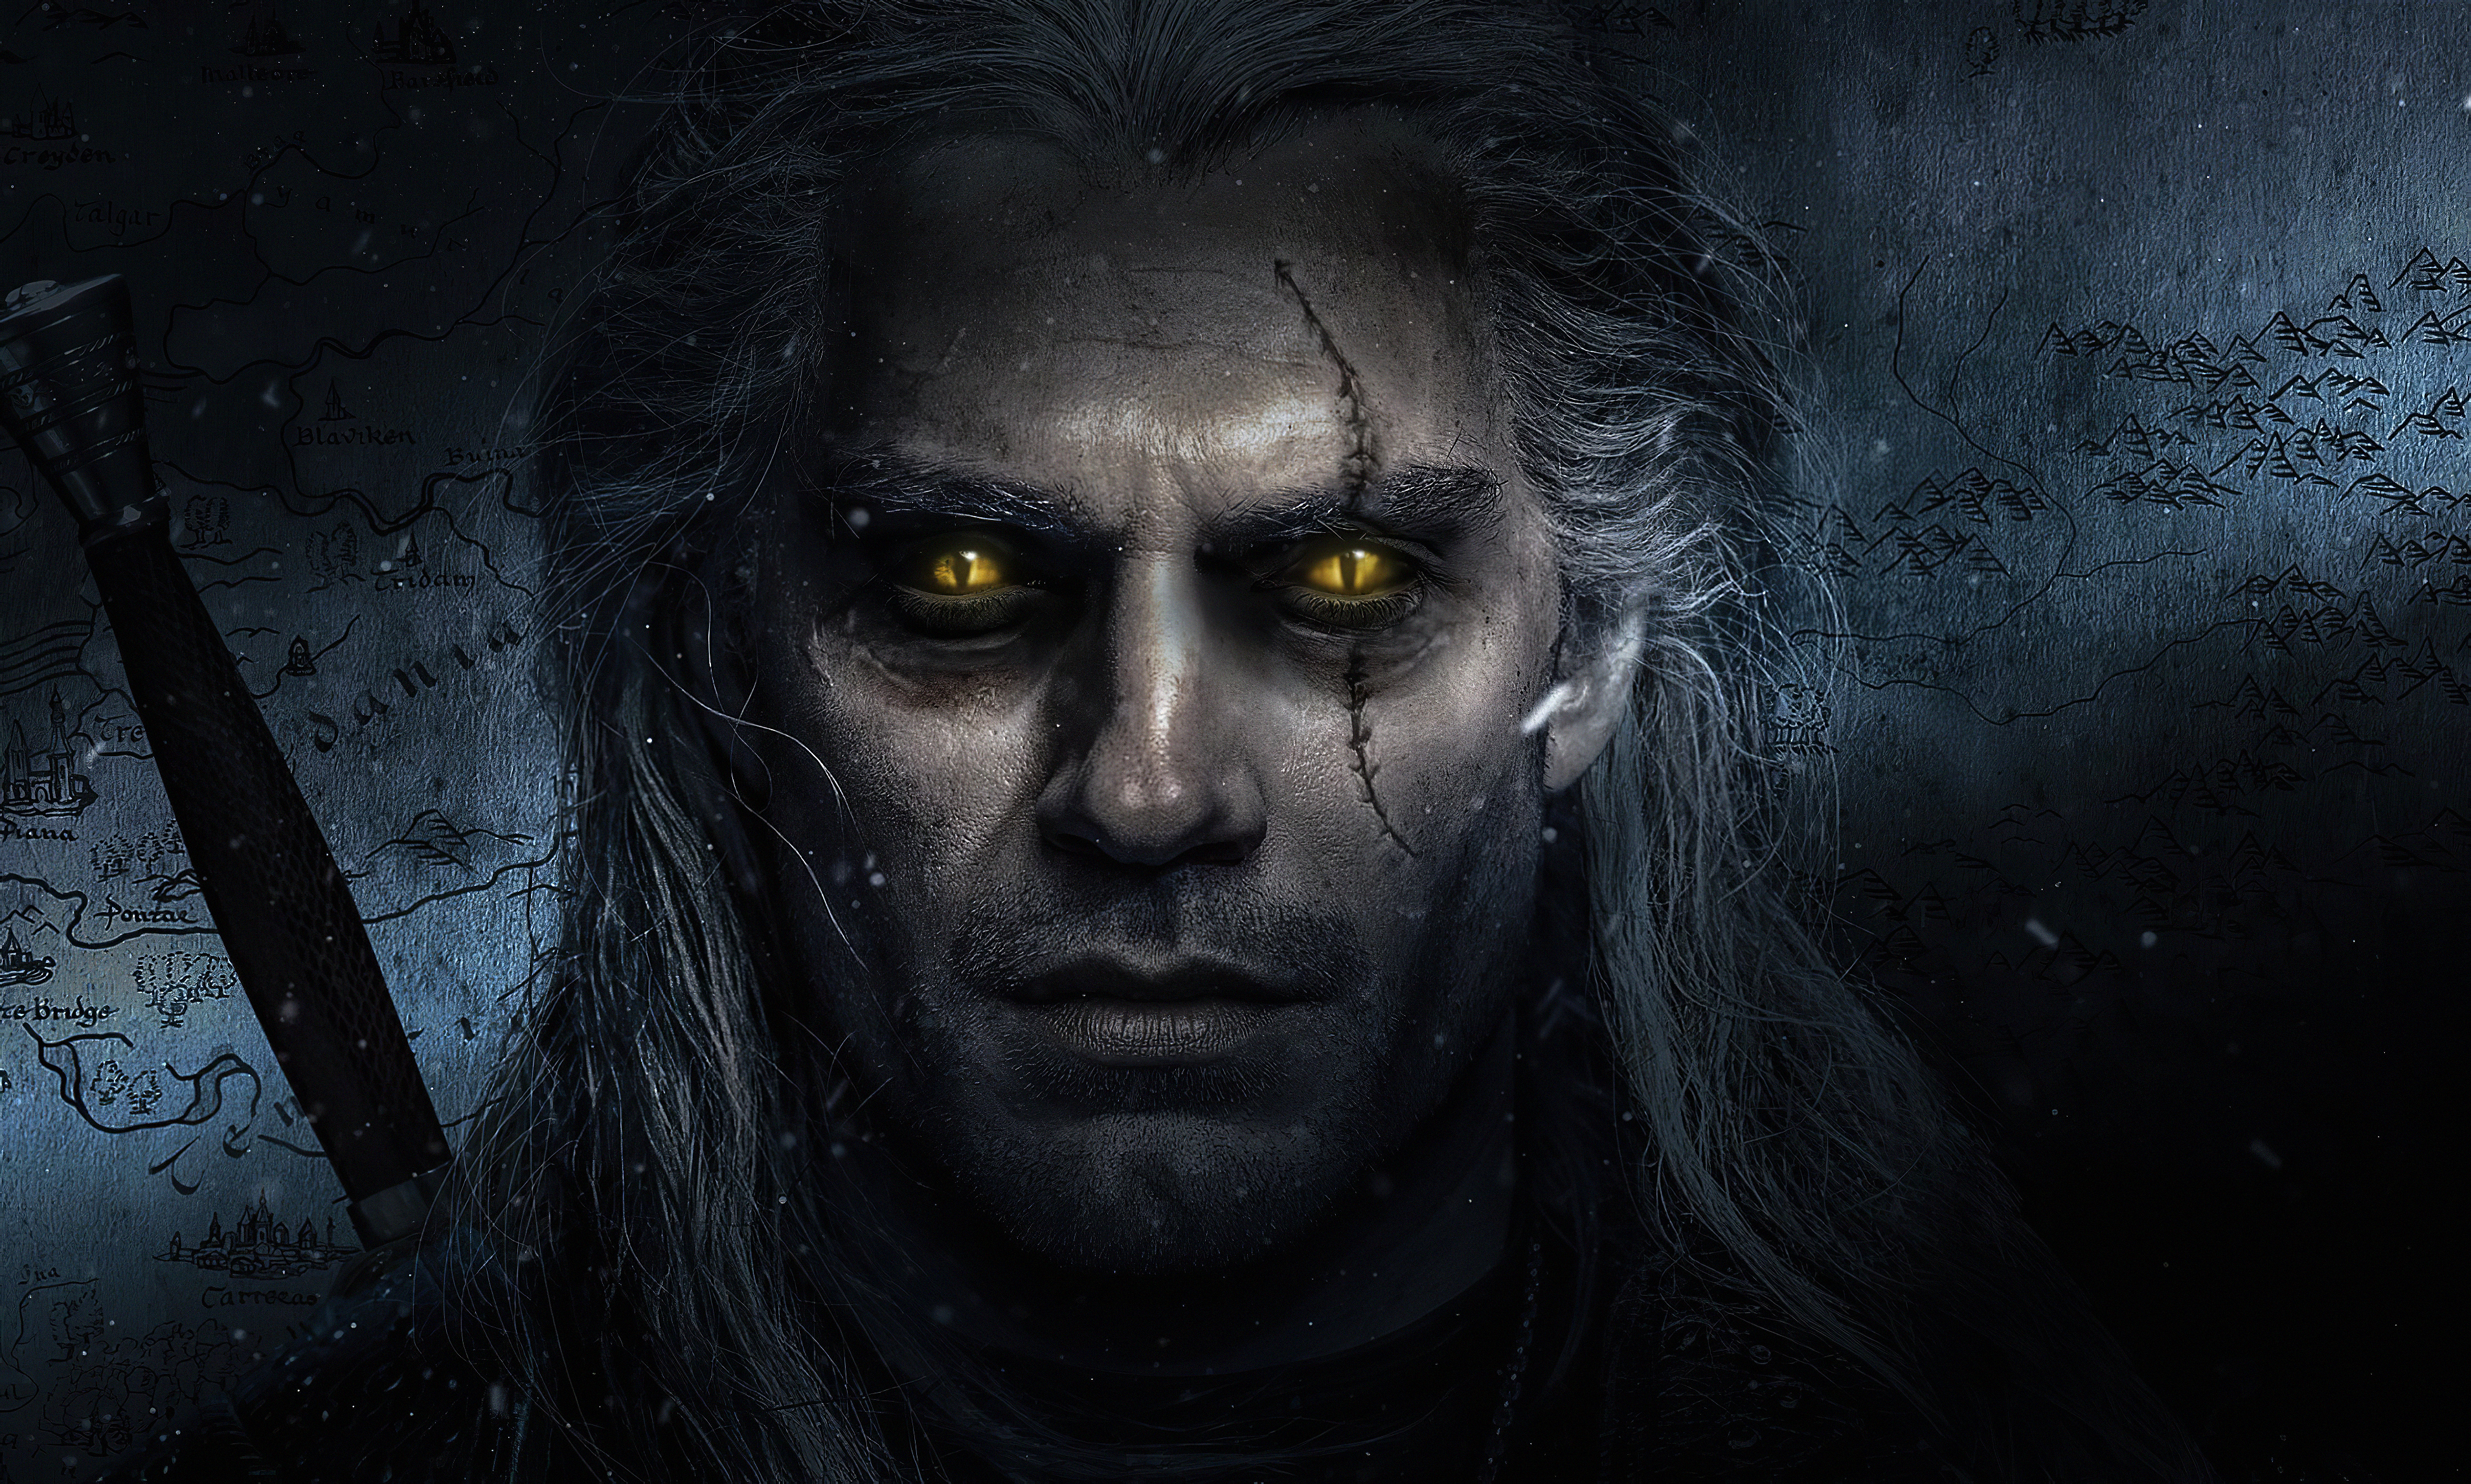 The Witcher Henry Cavill 4k Tv Series Hd Tv Shows 4k Wallpapers Images Backgrounds Photos And Pictures